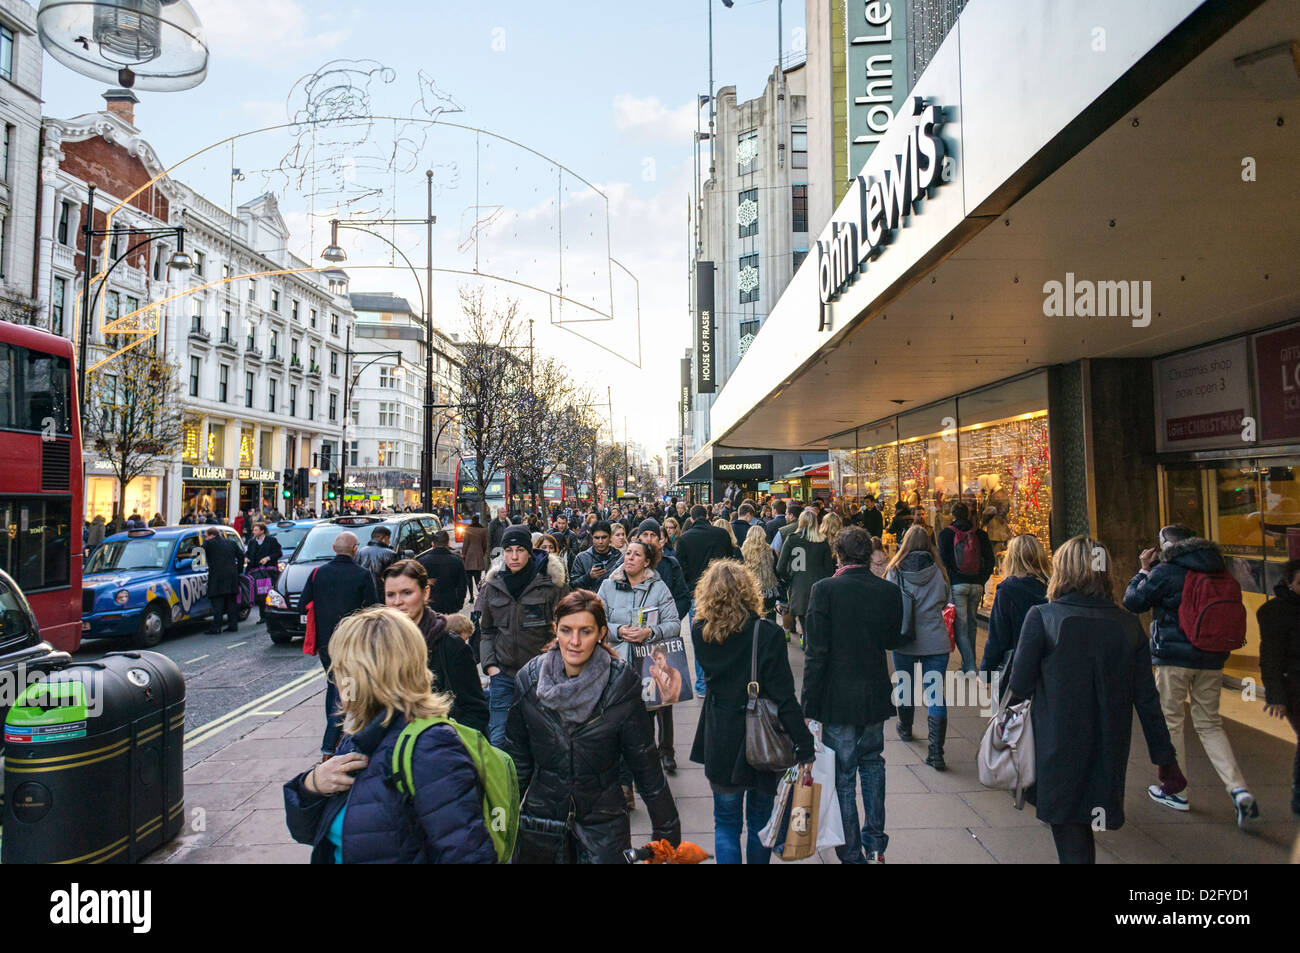 Shopping on a busy London street, Oxford Street, London at Christmas, UK - Stock Image